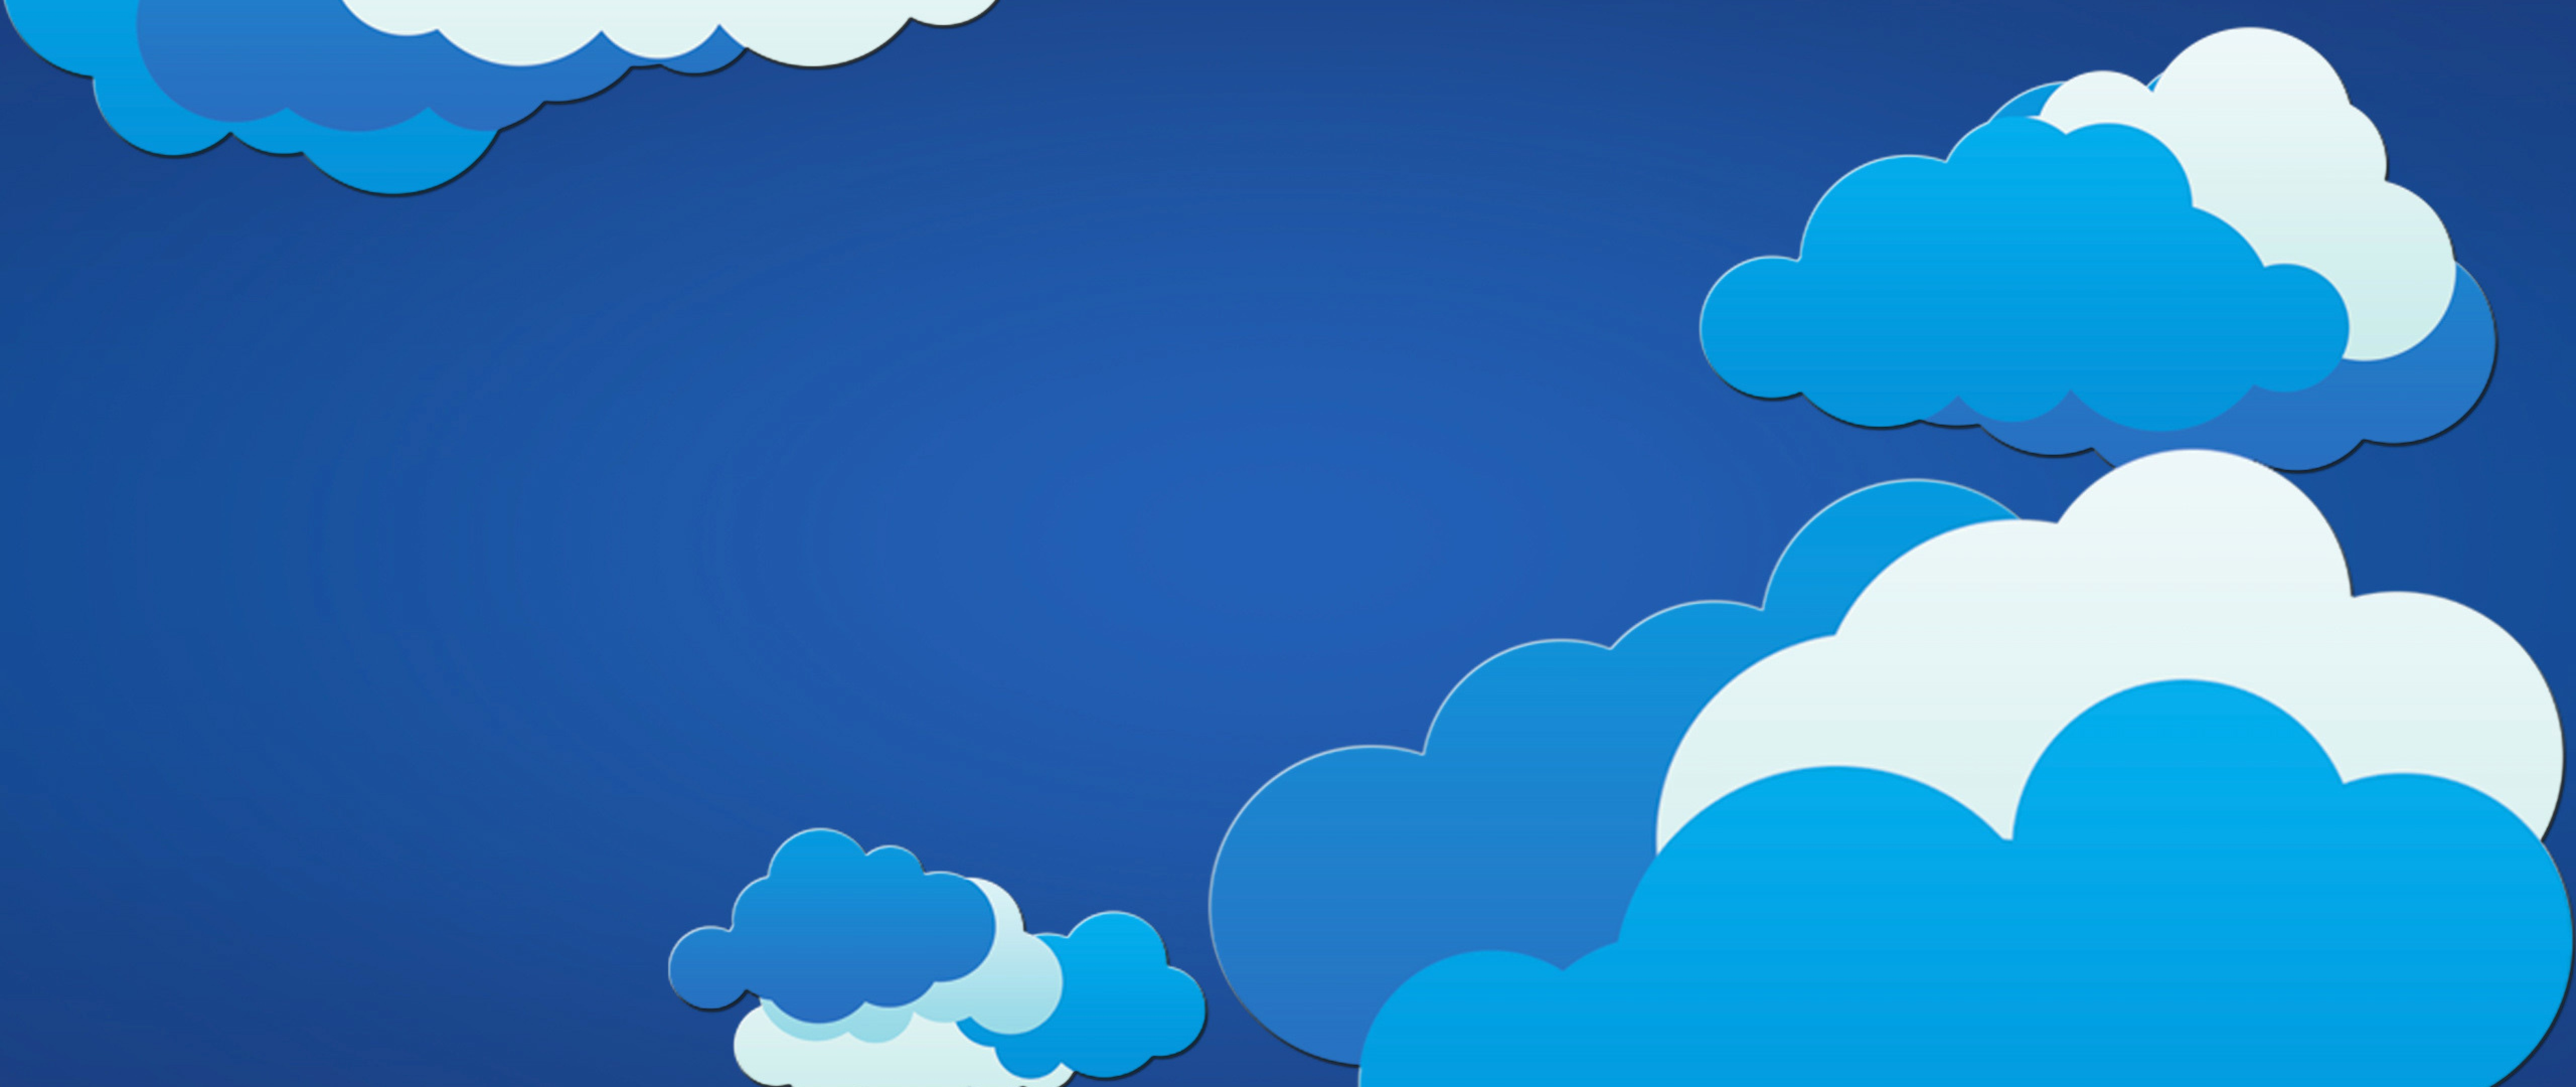 Free Clouds Vector Art Wallpaper for Desktop and Mobiles